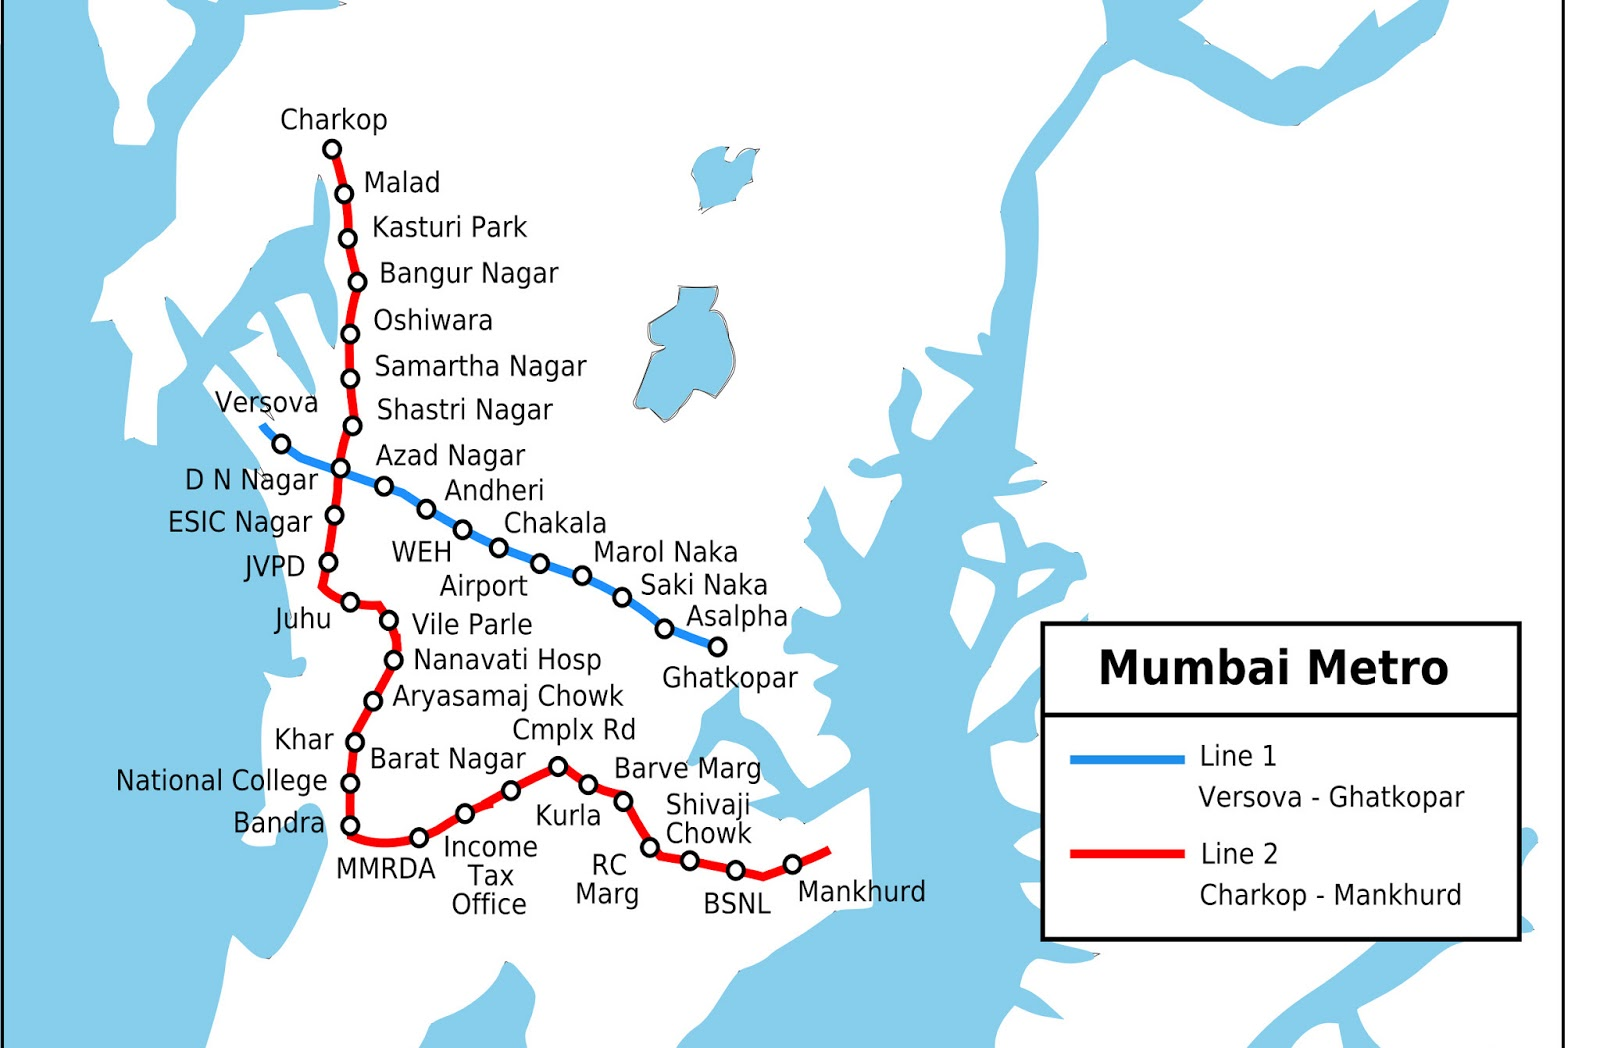 mumbai metro map stations : Mumbai Metro news Today in Pictures